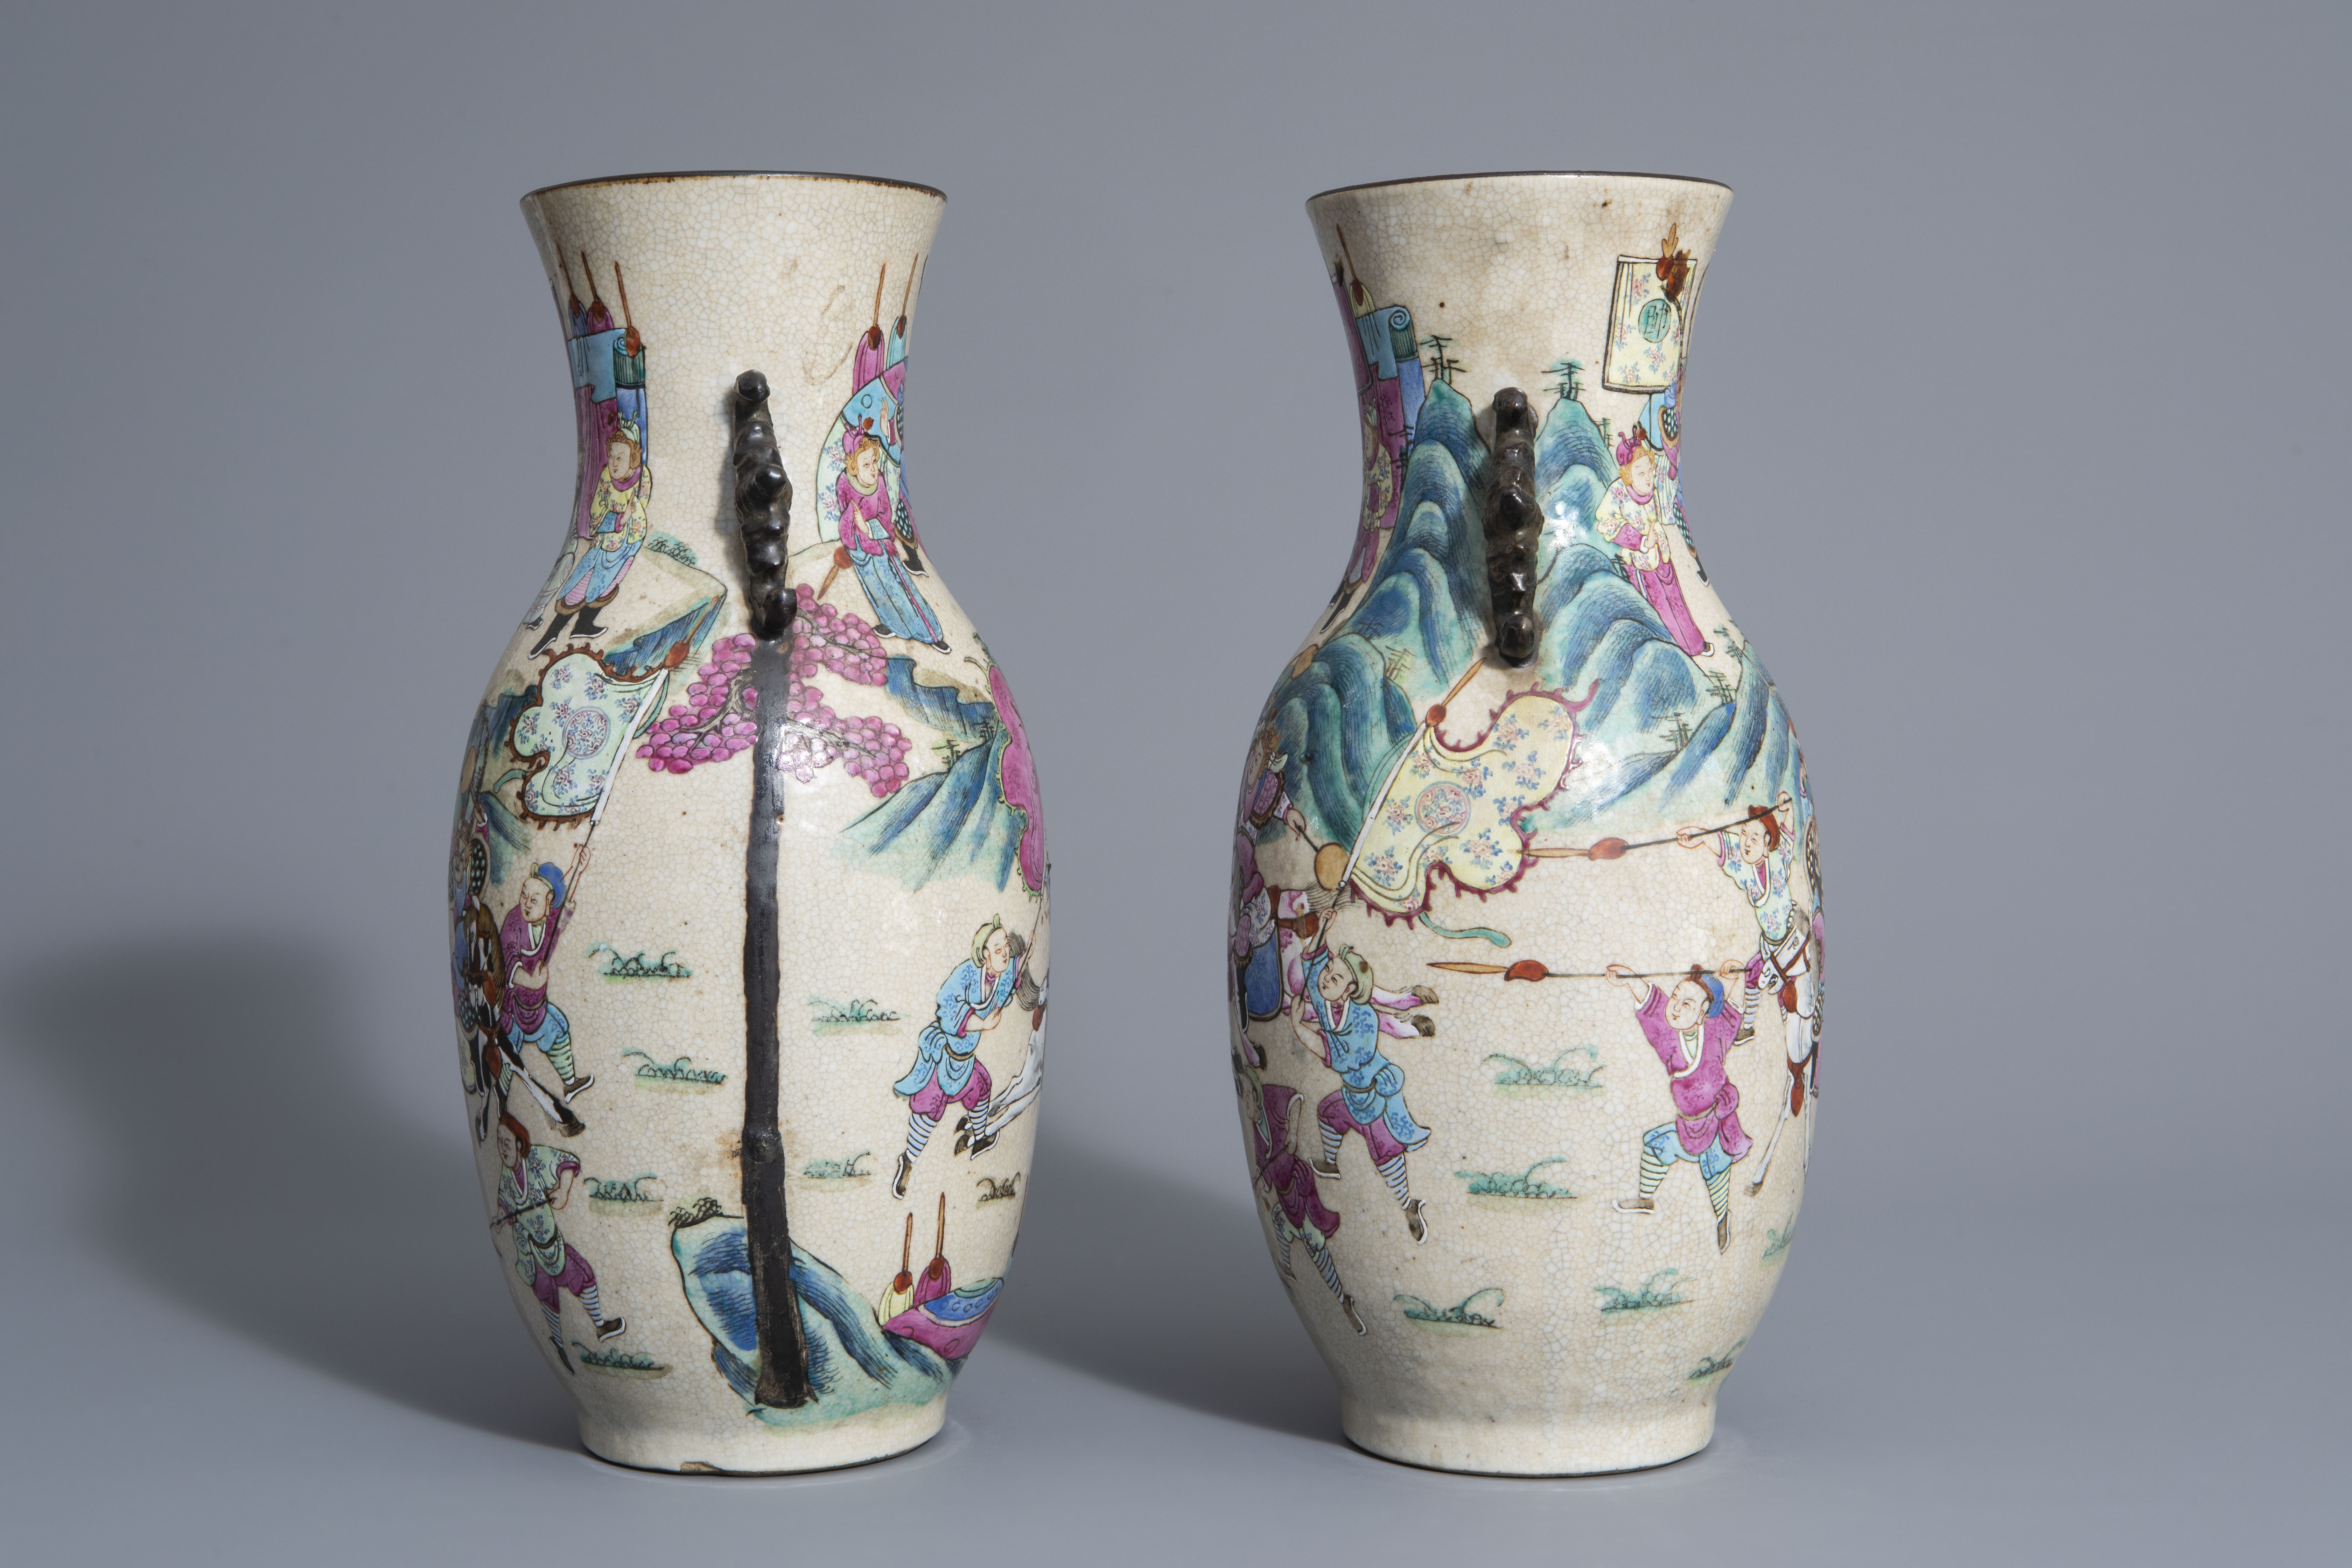 A pair of Chinese Nanking crackle glazed famille rose vases w. warrior scenes on stands, 19th C. - Image 5 of 7